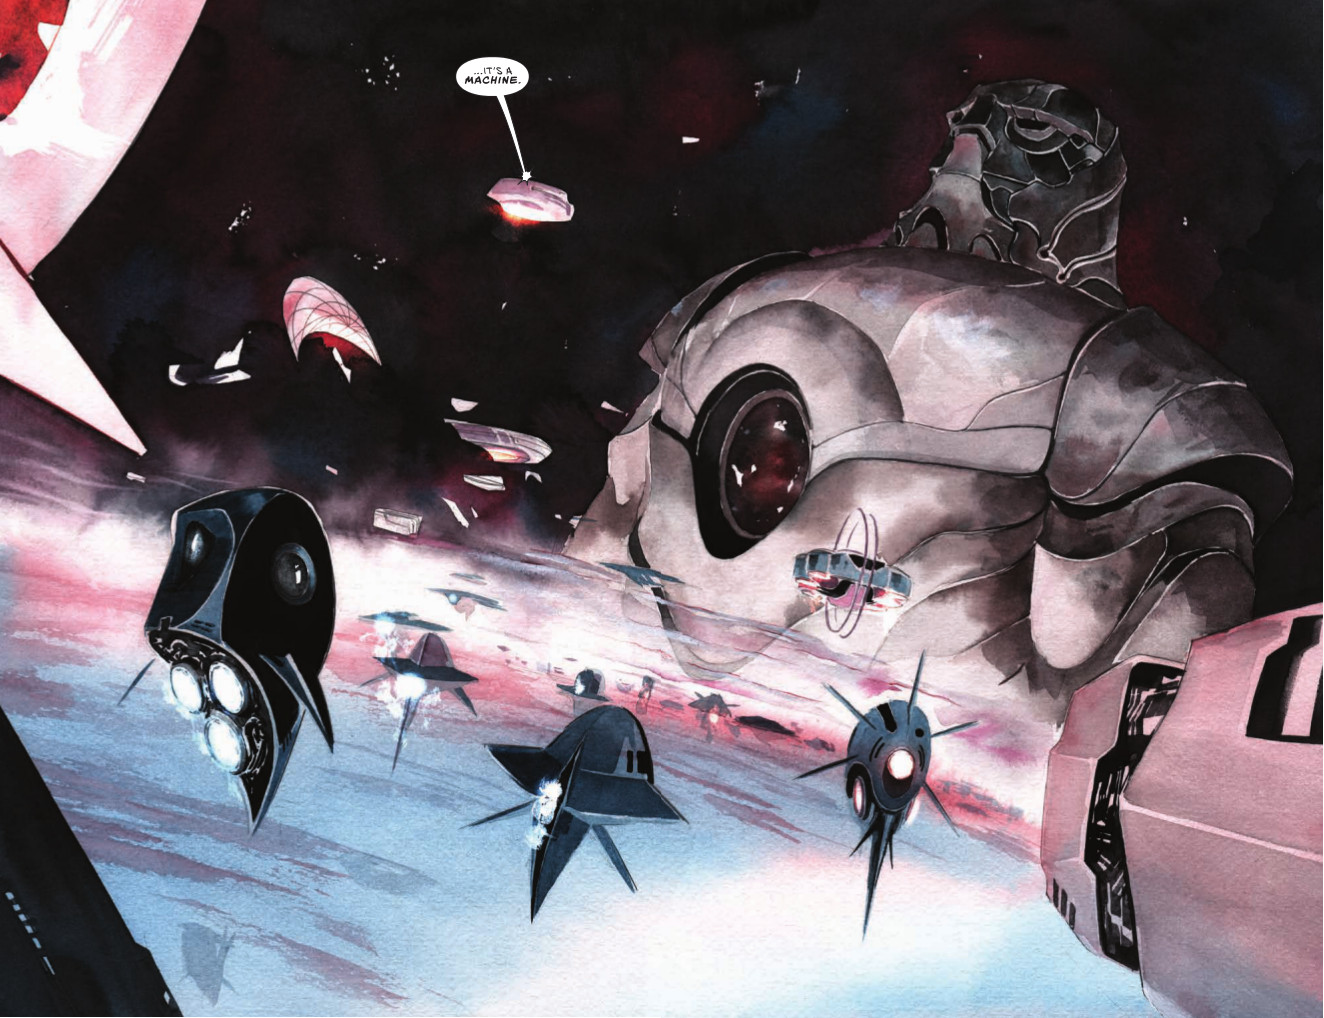 Descender #1 Page 8 and 9